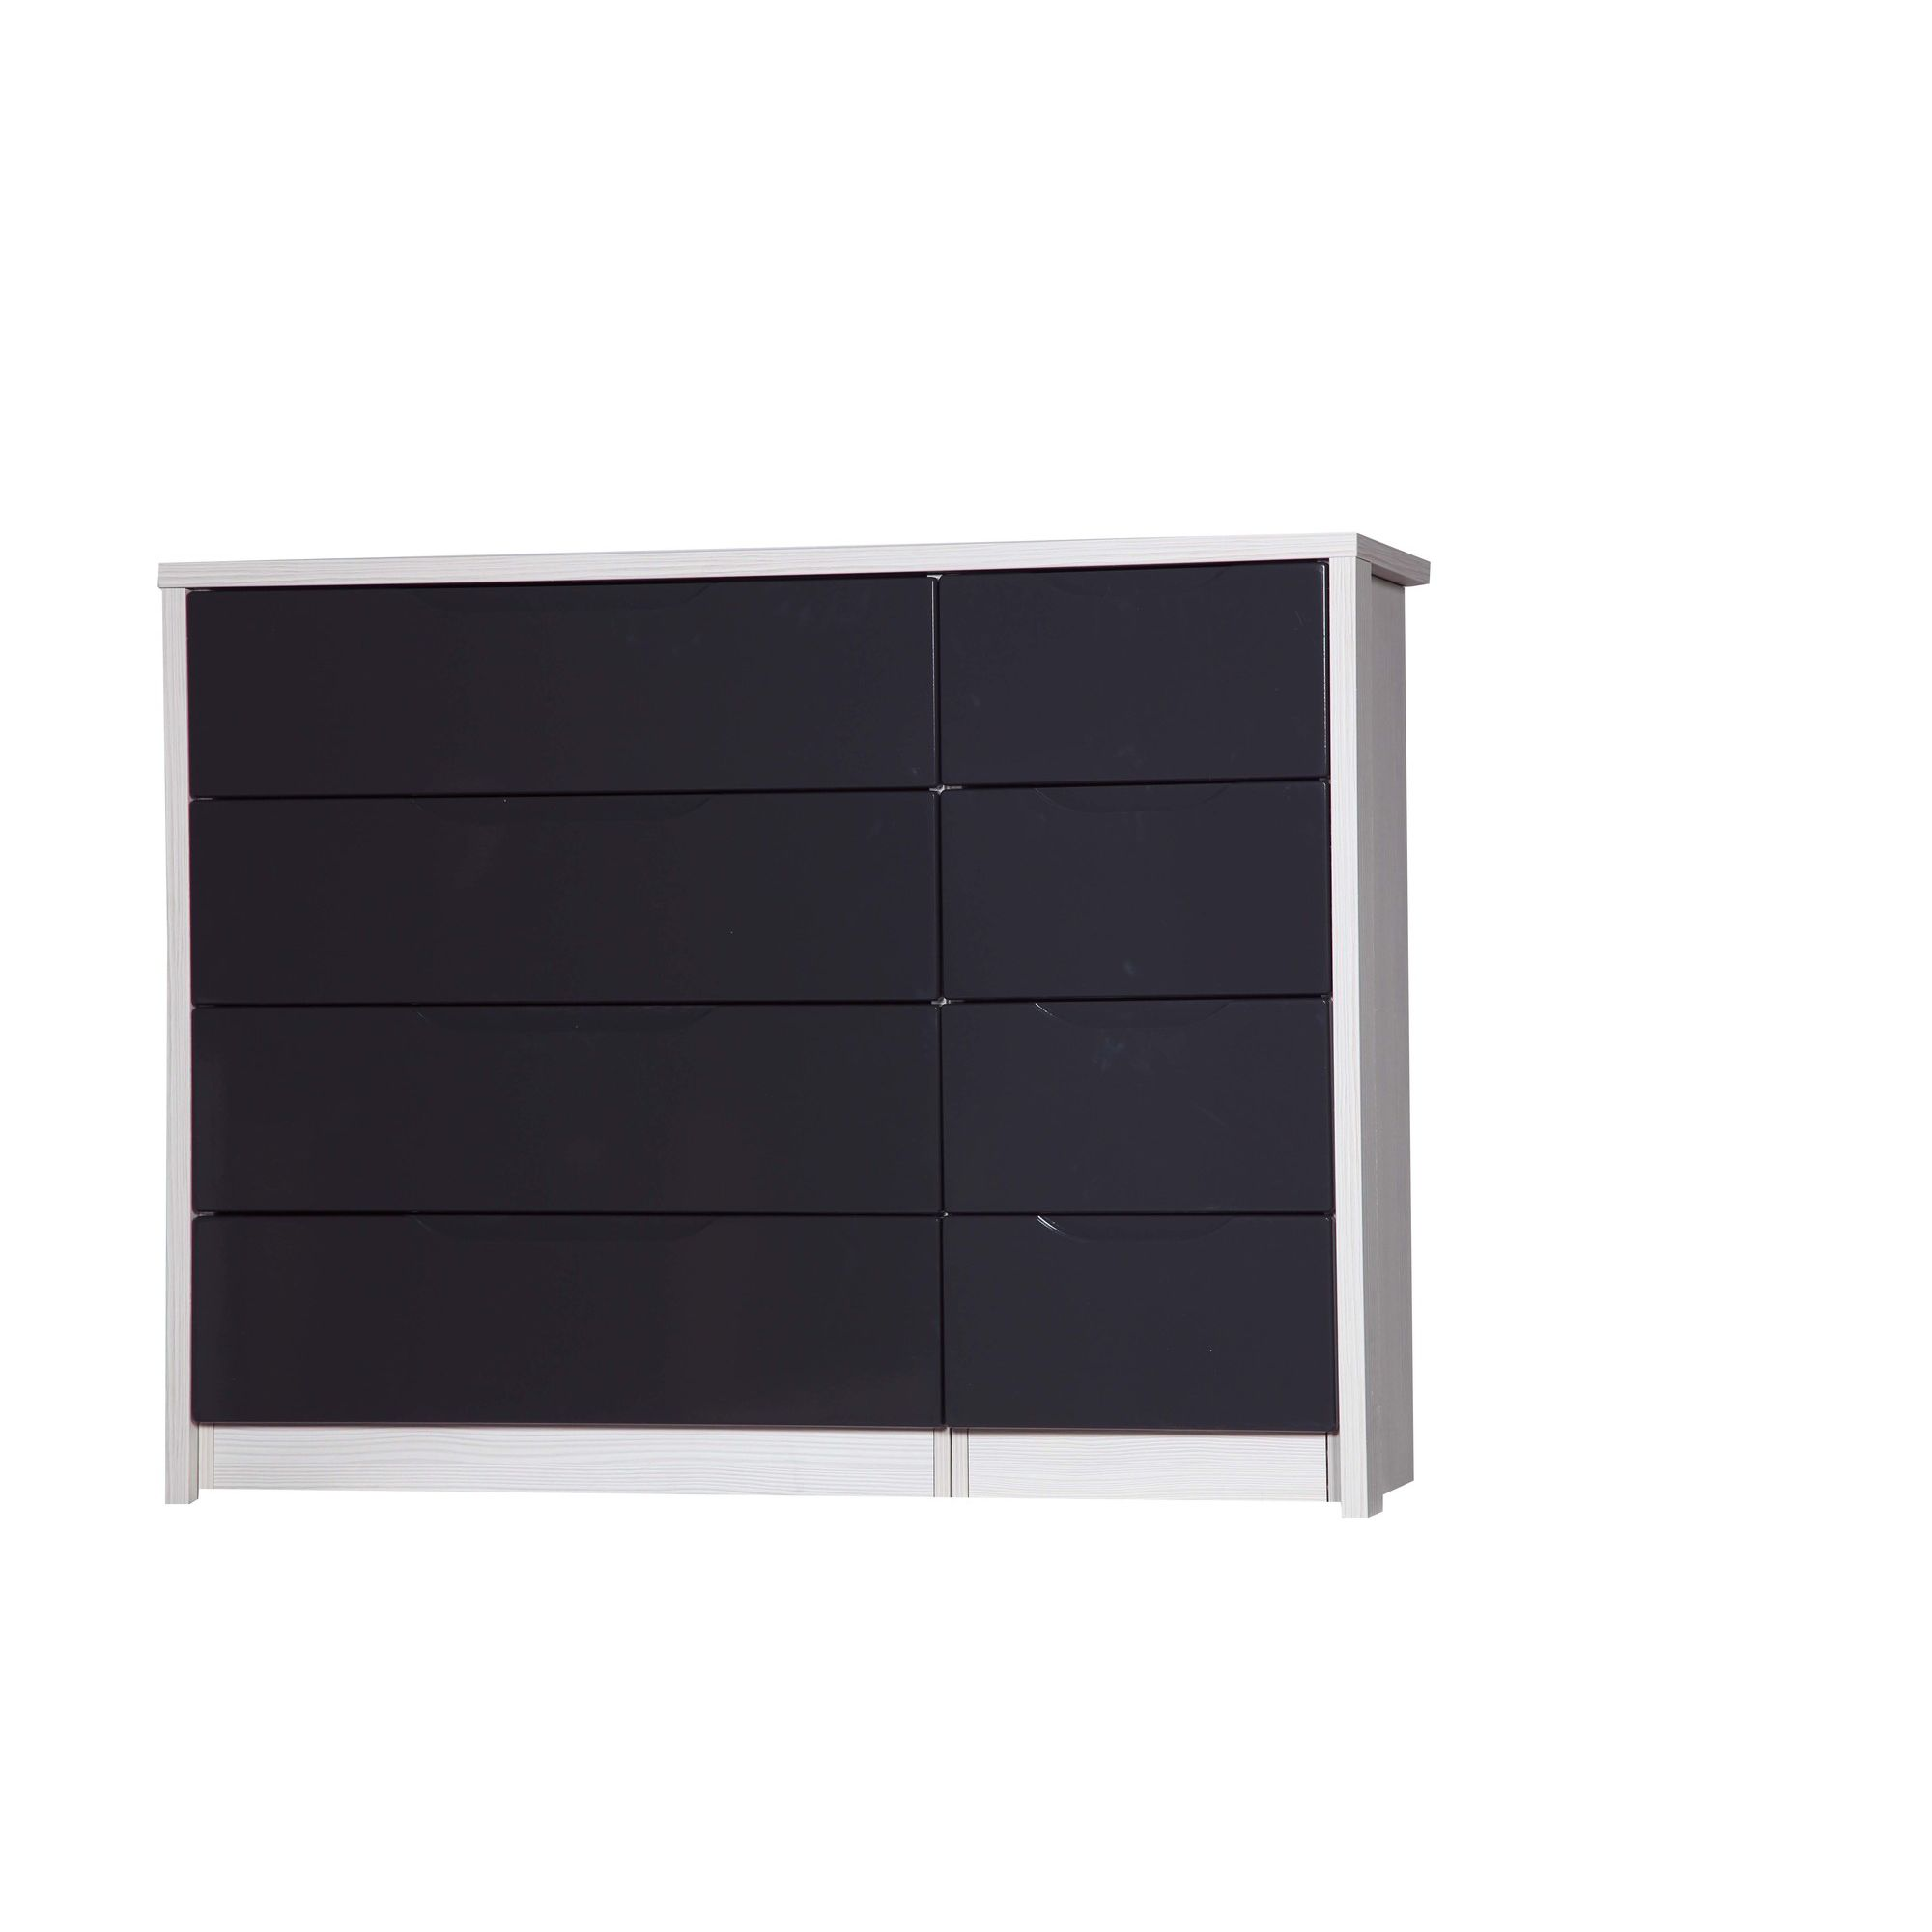 Alto Furniture Avola 8 Drawer Double Chest - White Avola Carcass With Grey Gloss at Tesco Direct